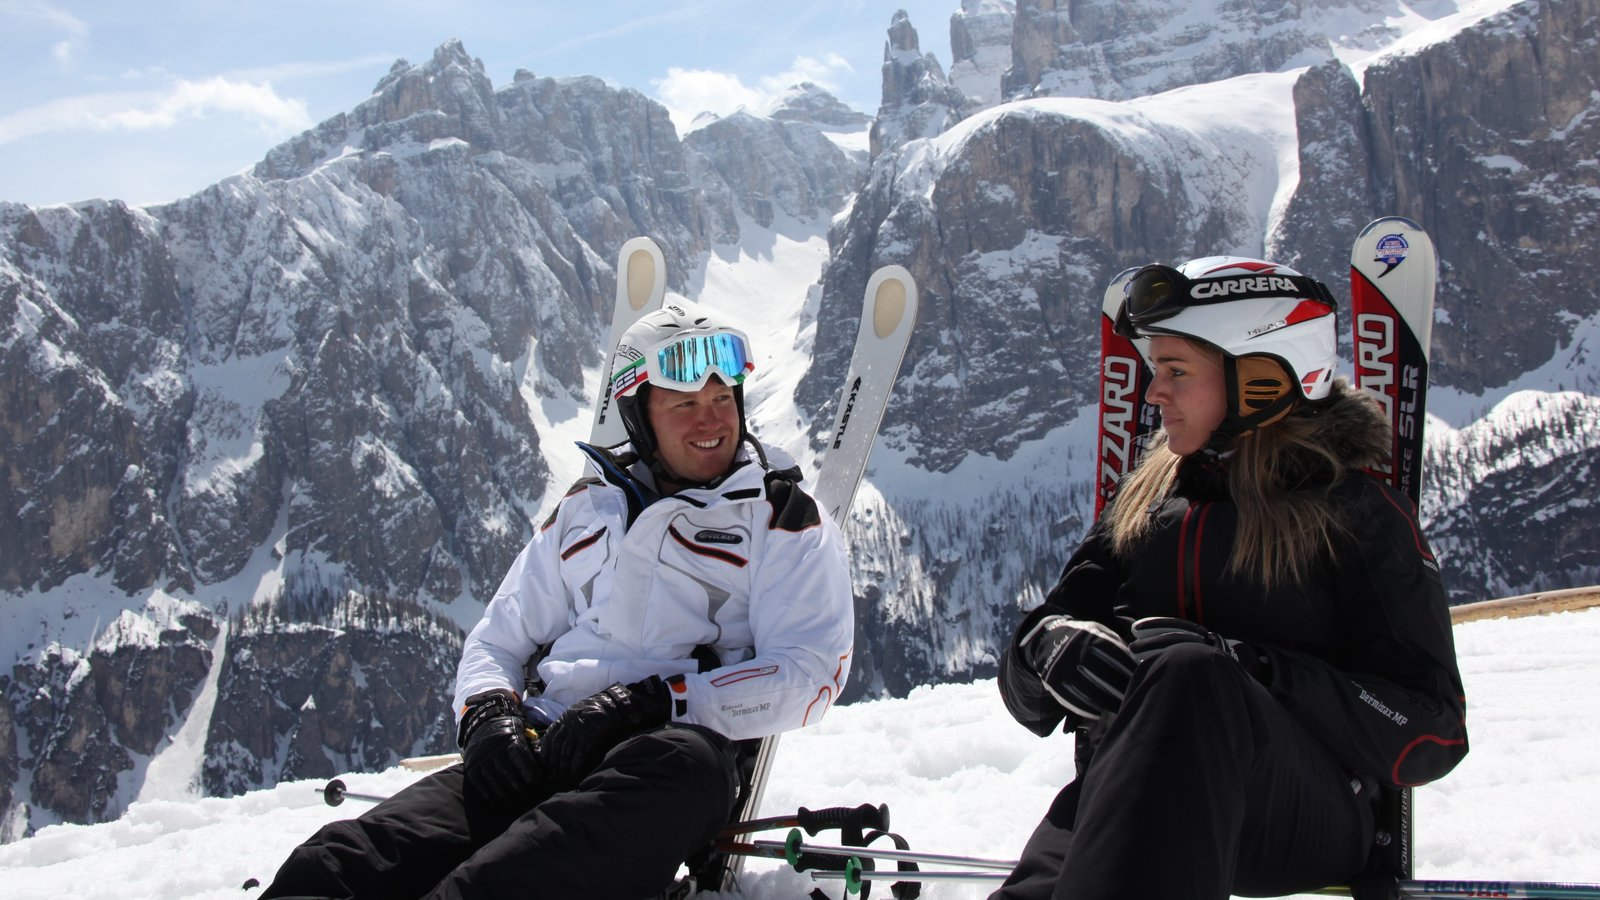 Alta Badia which includes snow skiing and snow as well as a small group of people